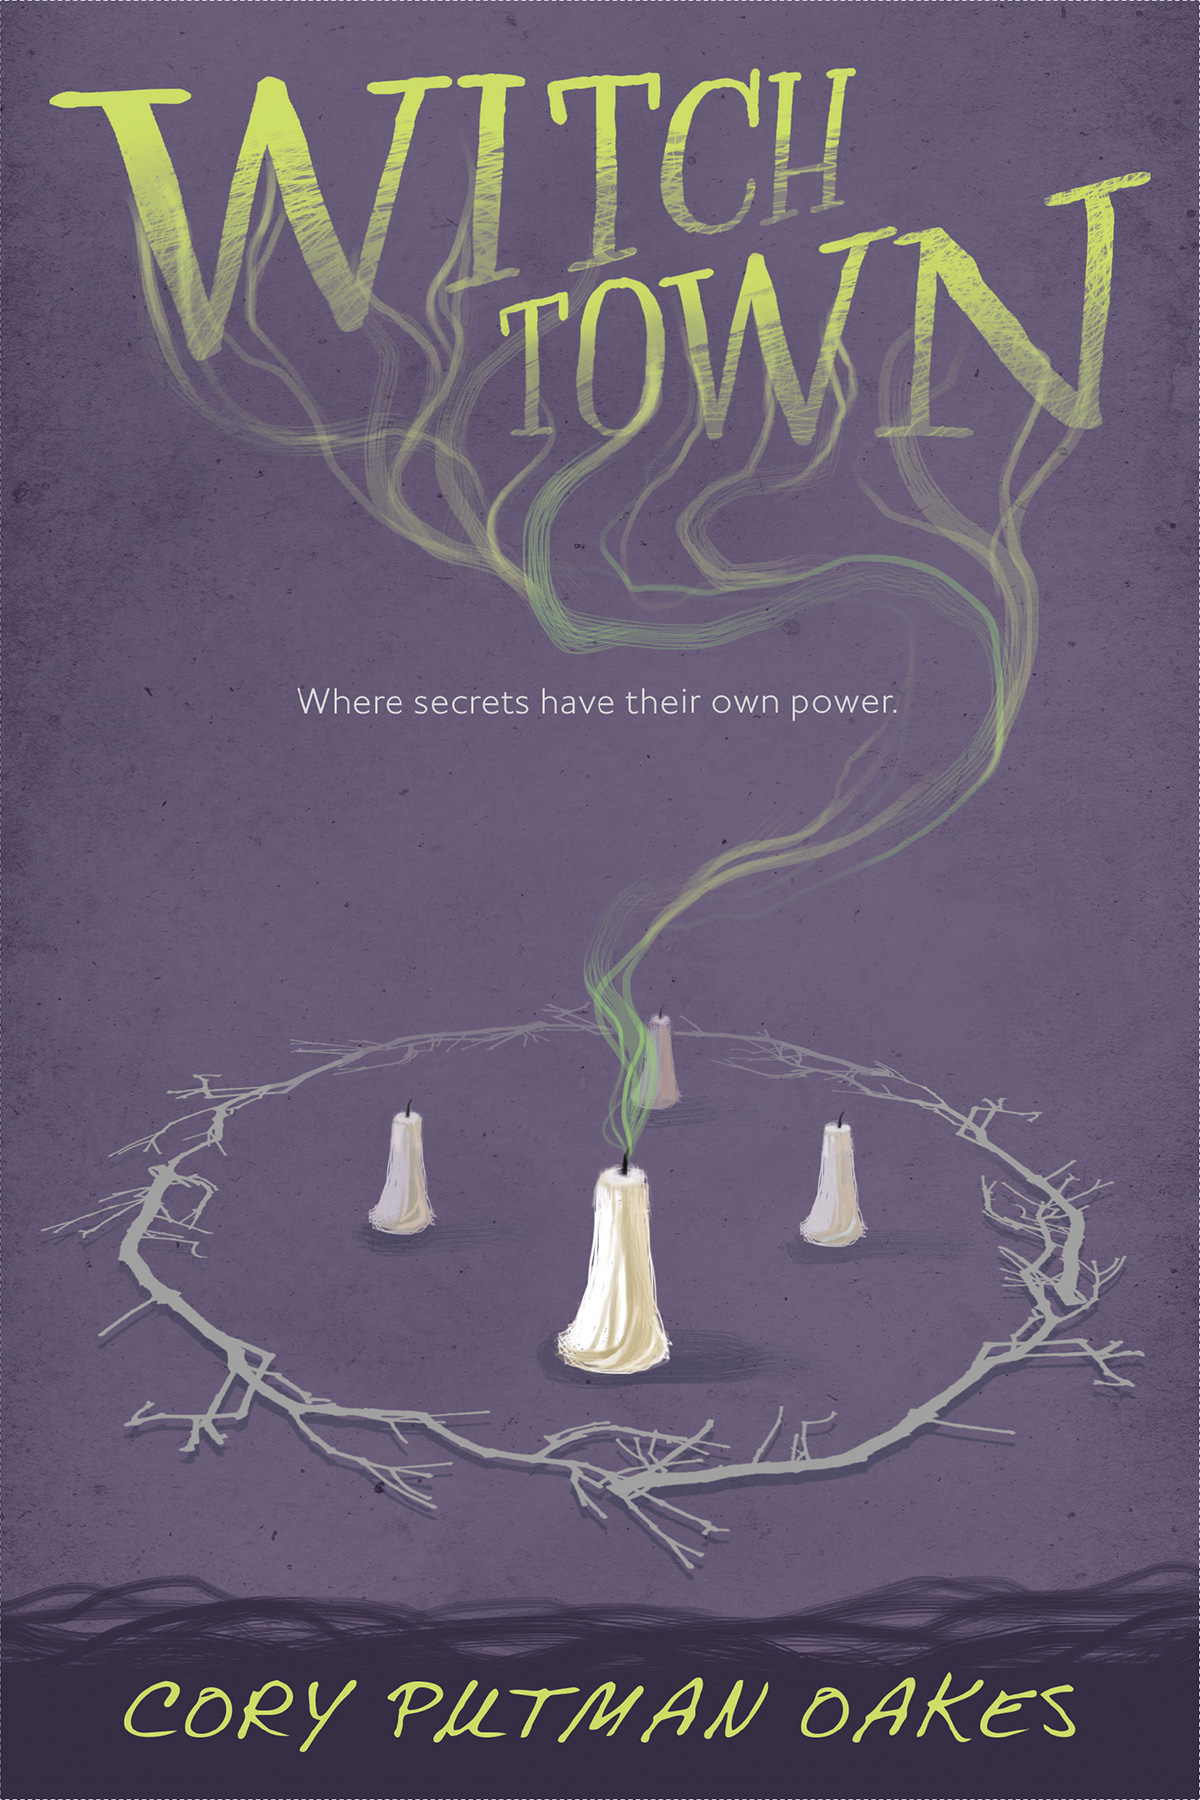 Witchtown-9780544765573